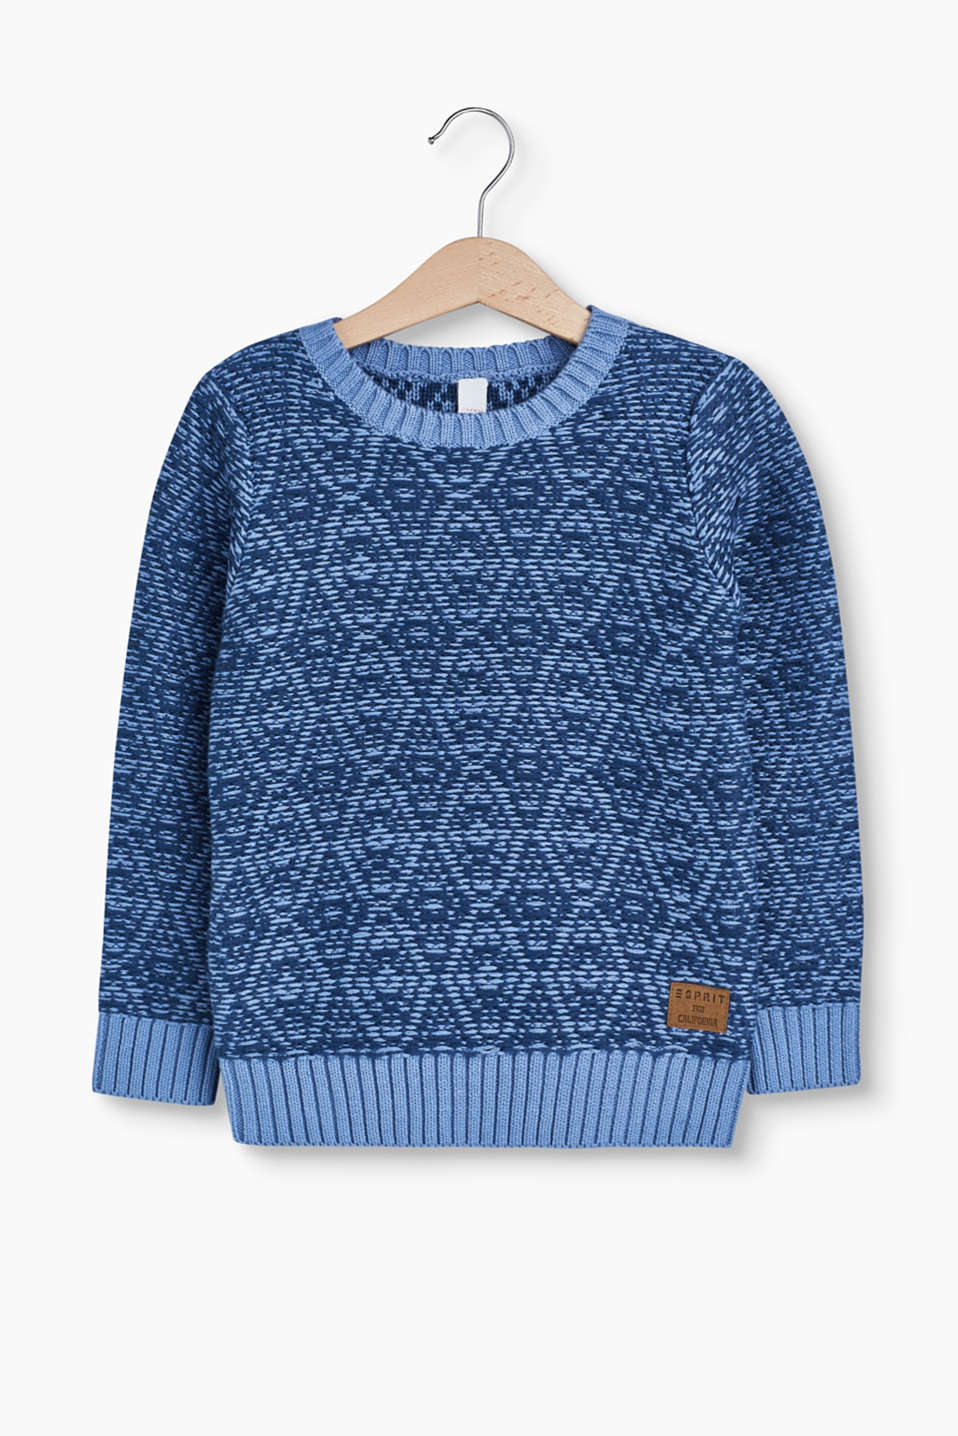 This jumper made of insulating cotton knit yarn with a diamond pattern is a cosy piece.